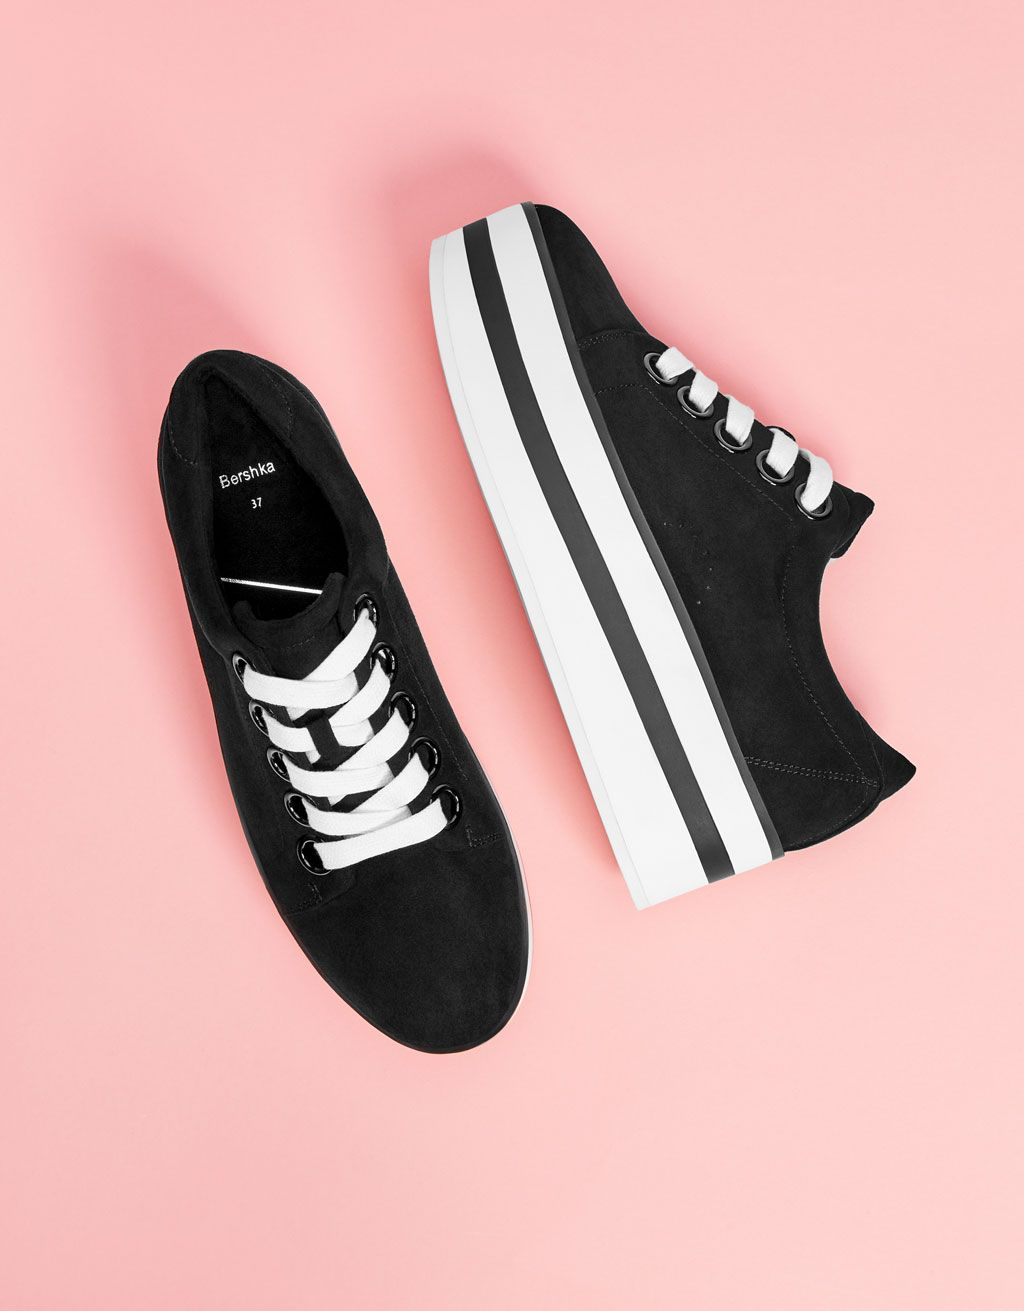 Two-tone platform sneakers - Bershka  fashion  product  shoes  cool  trend   trendy  outfit  girl  platform  sneakers  zapatillas  plataforma 978aaec08